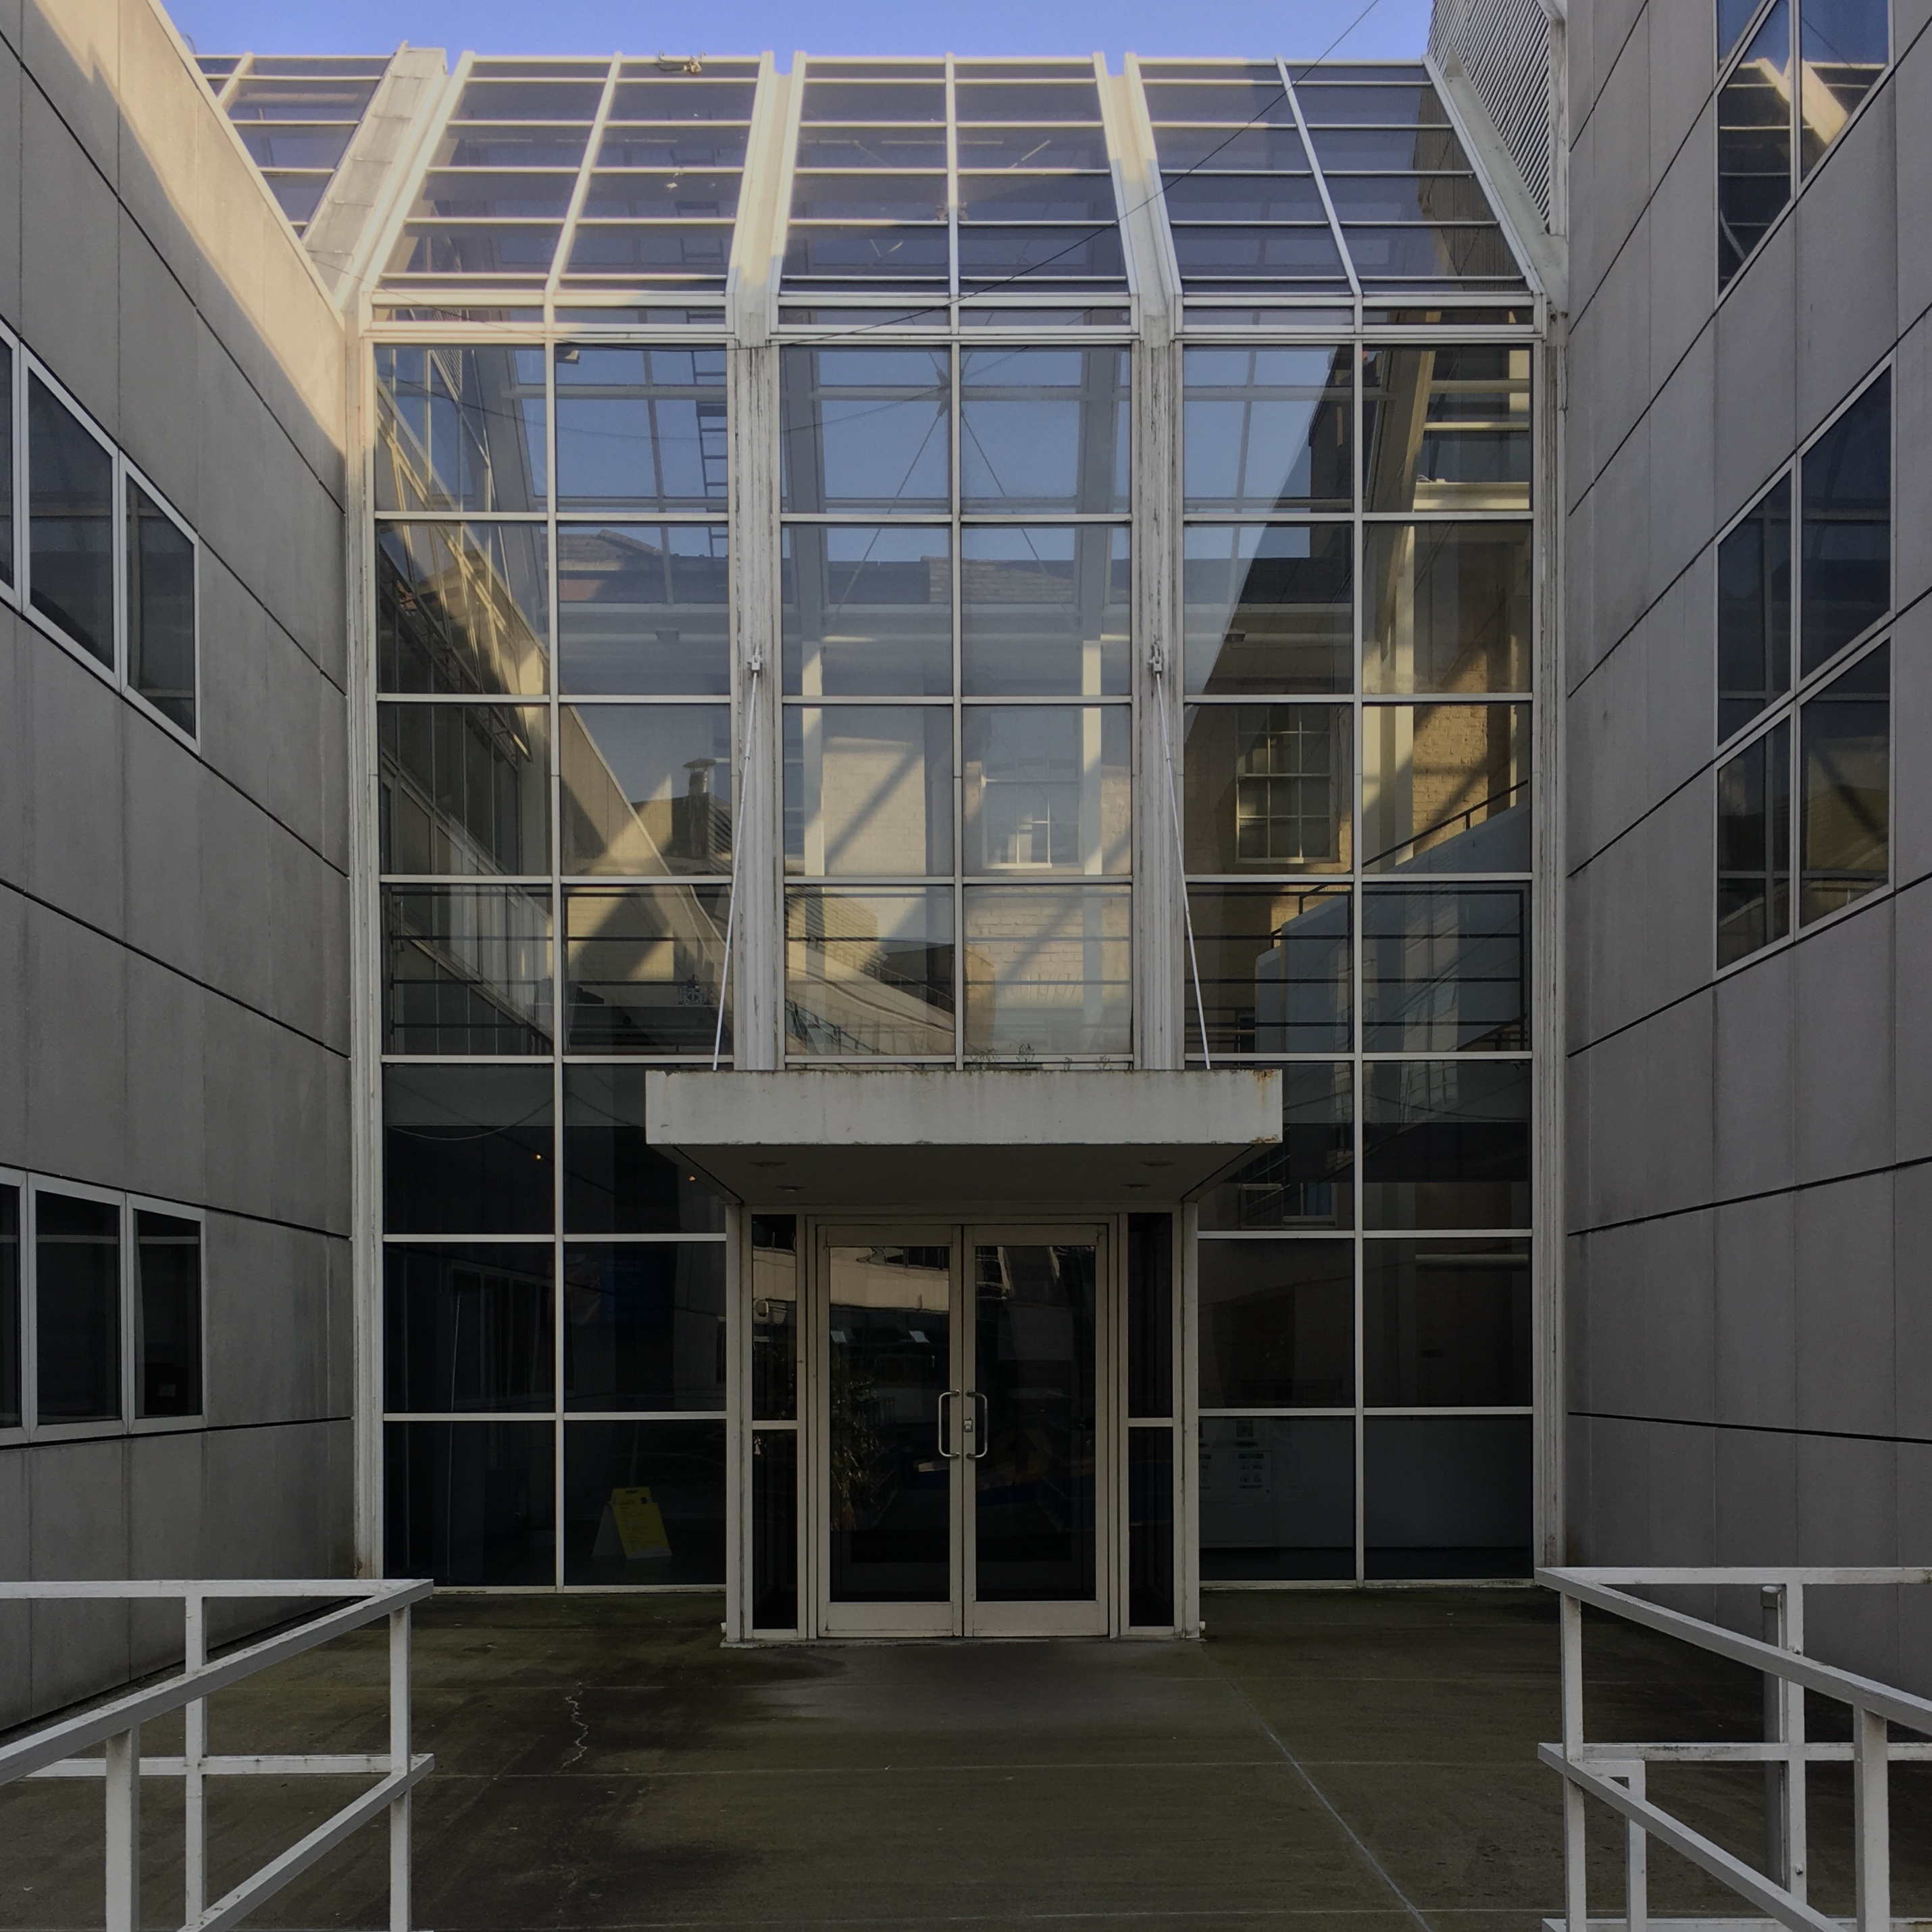 Hamilton building: The glass atrium forms an indoor street connecting to the townhouses on the outside of campus.